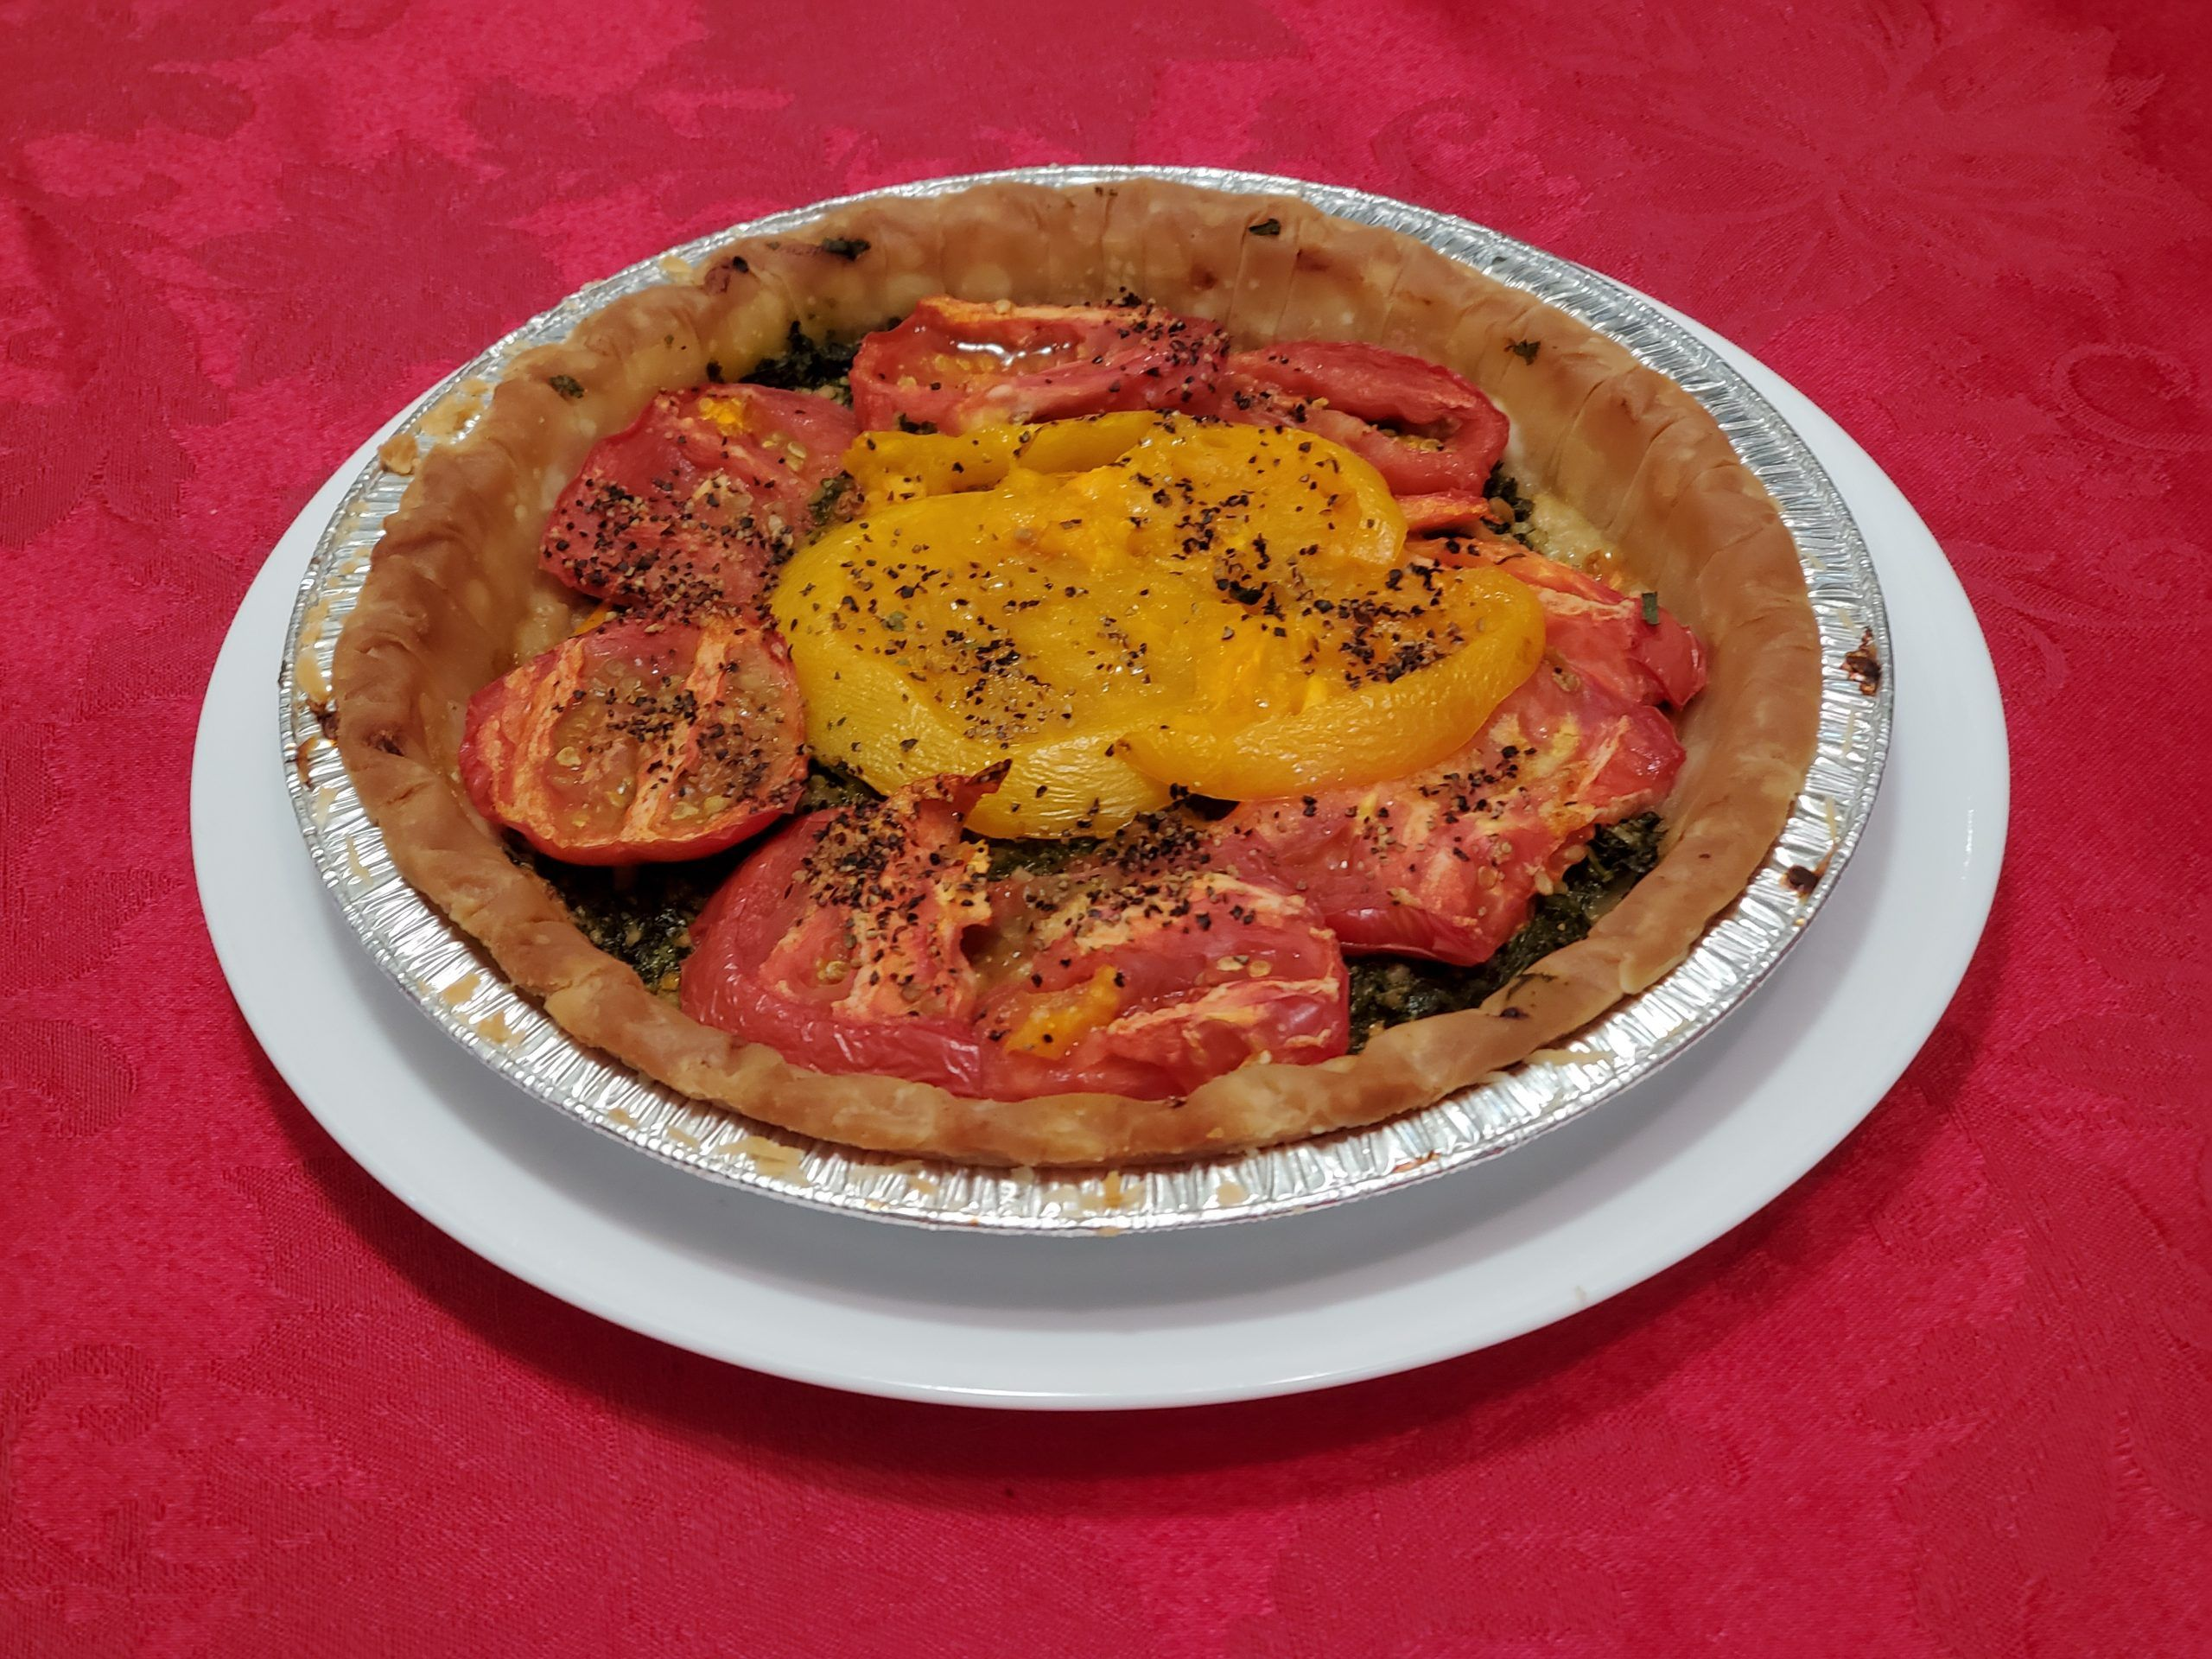 Tomato pie after baking